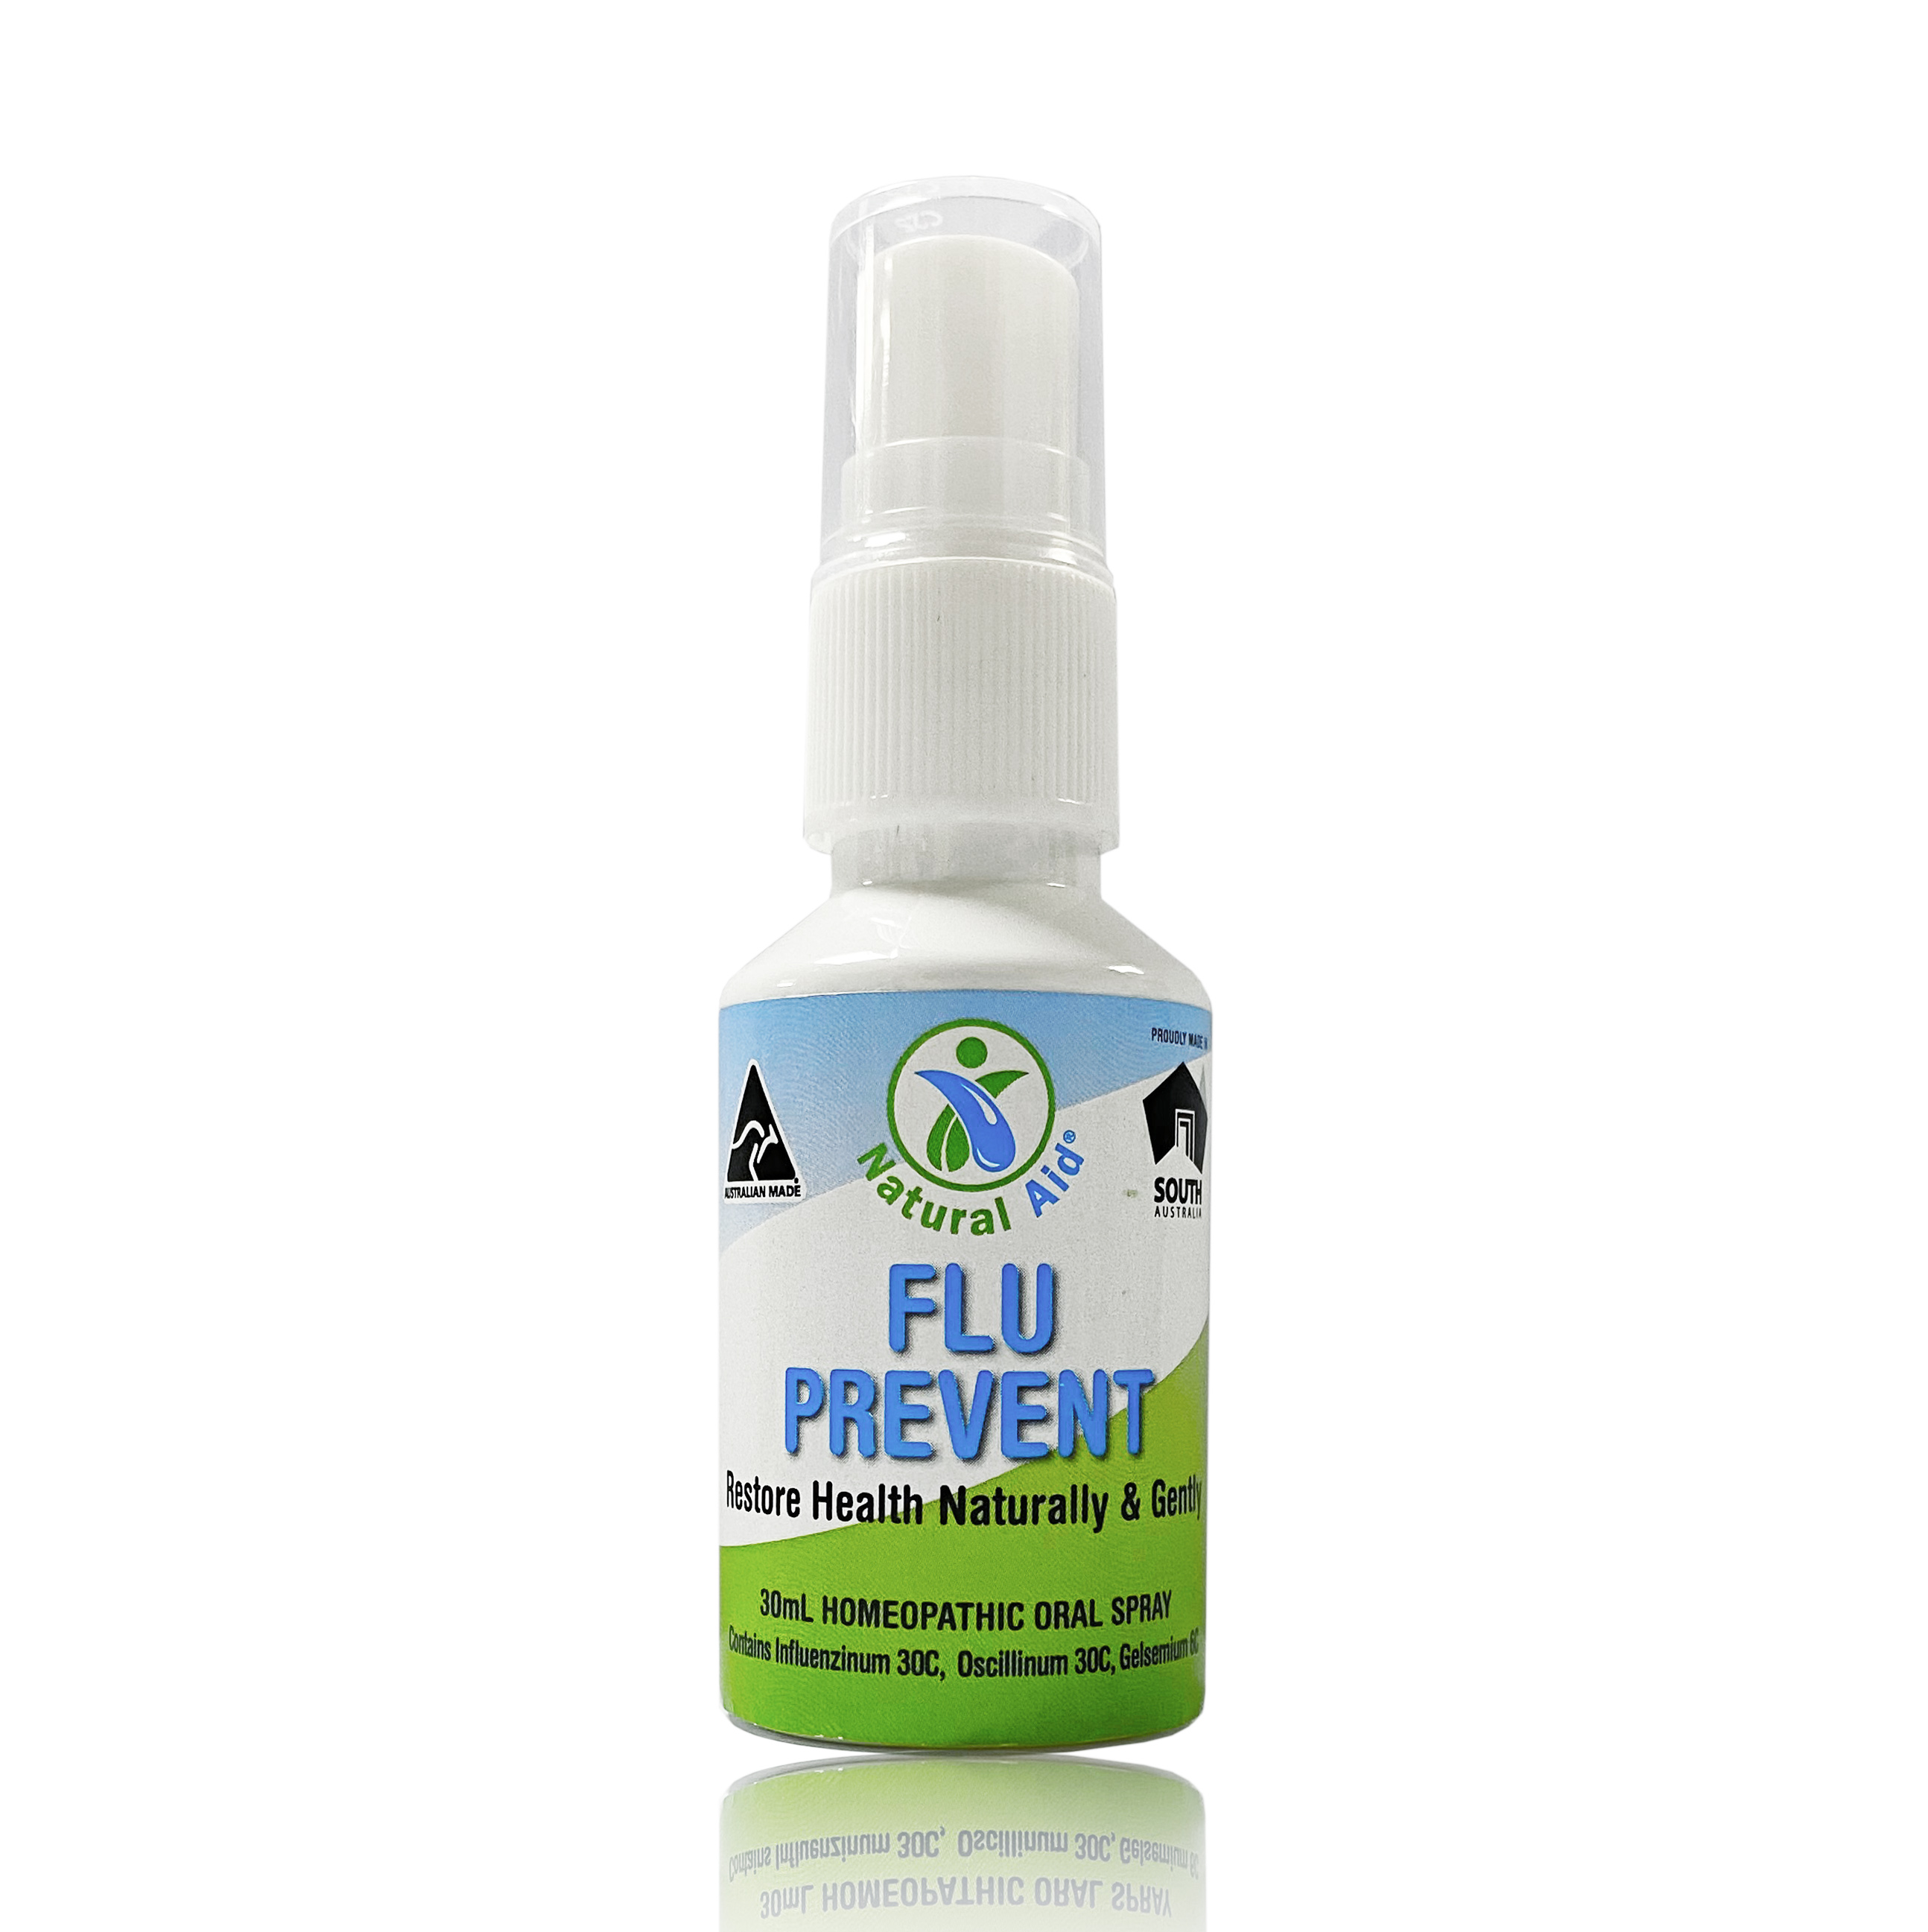 Natural Aid FLU PREVENT Oral Spray 30ml